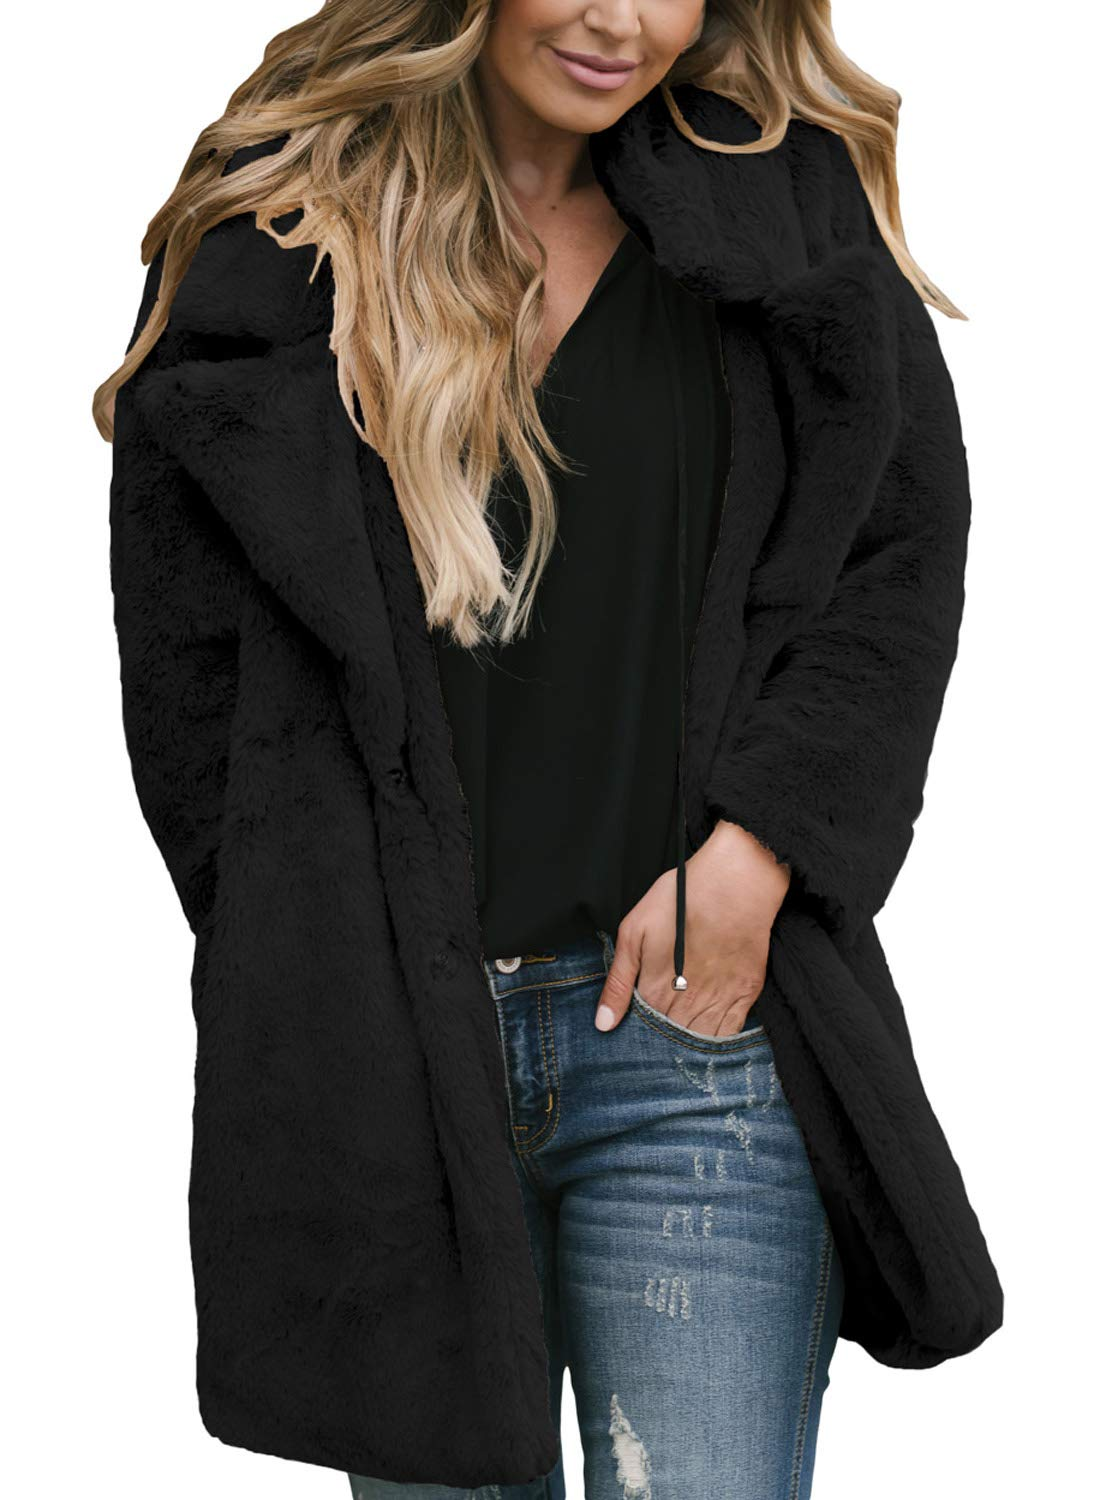 Asvivid Womens Soft Fall Fluffy Long Sleeve Open Front Lapel Shearling Shaggy Ladies Jacket Coat Outerwear M Black